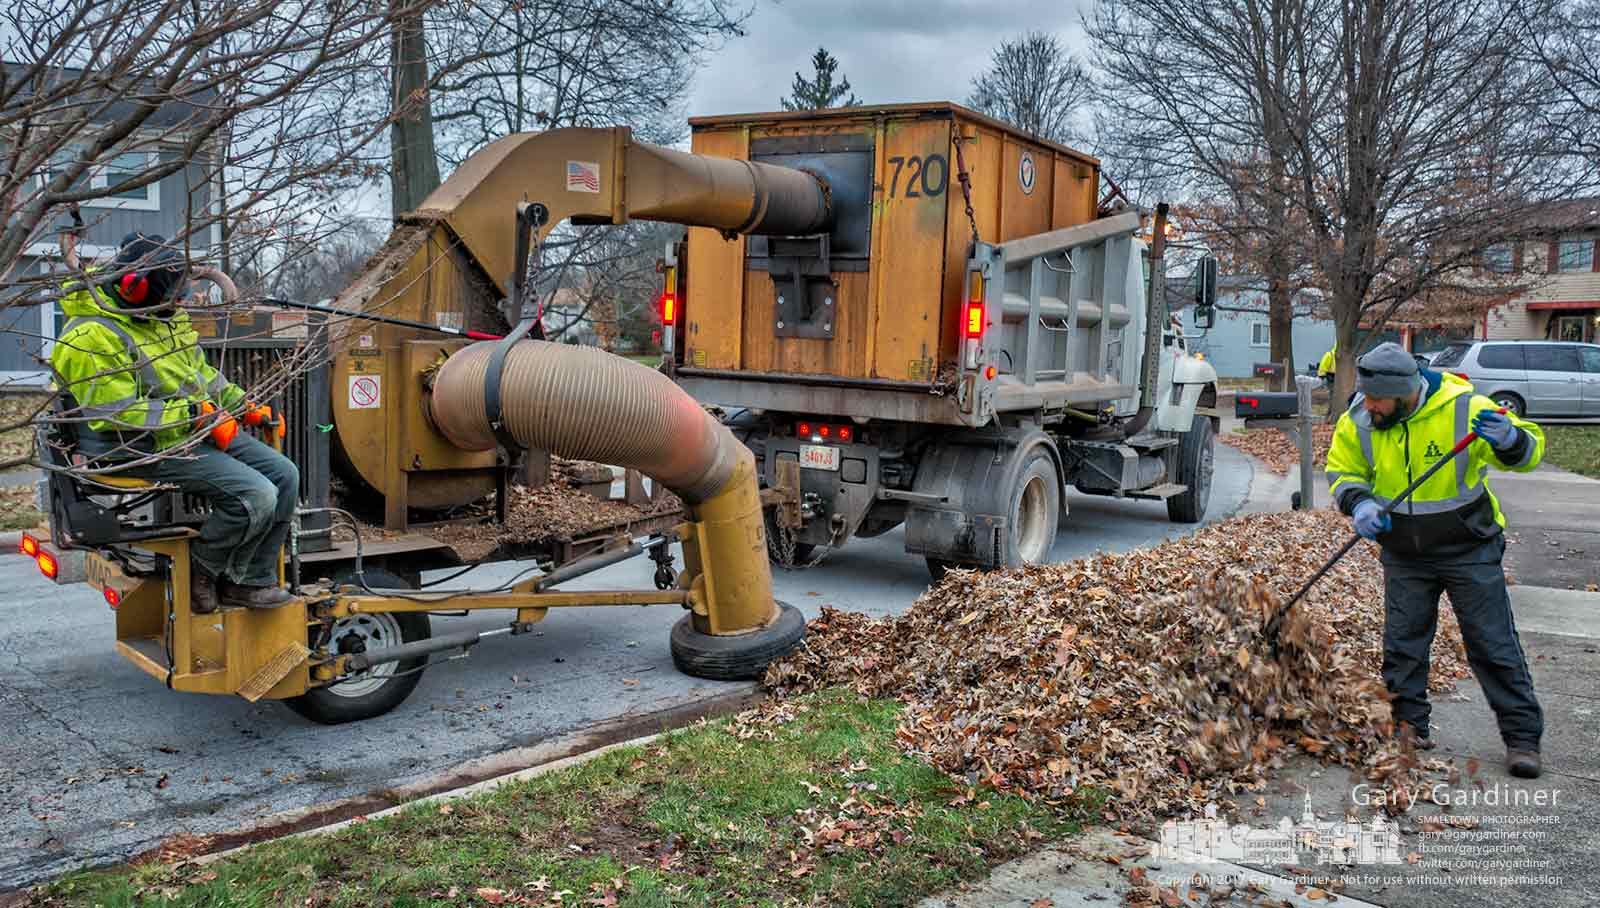 Westerville crew runs one of the city leaf vacuums along a neighborhood street clearing away collections of leaves raked to the curb. My Final Photo for Dec. 7, 2017.